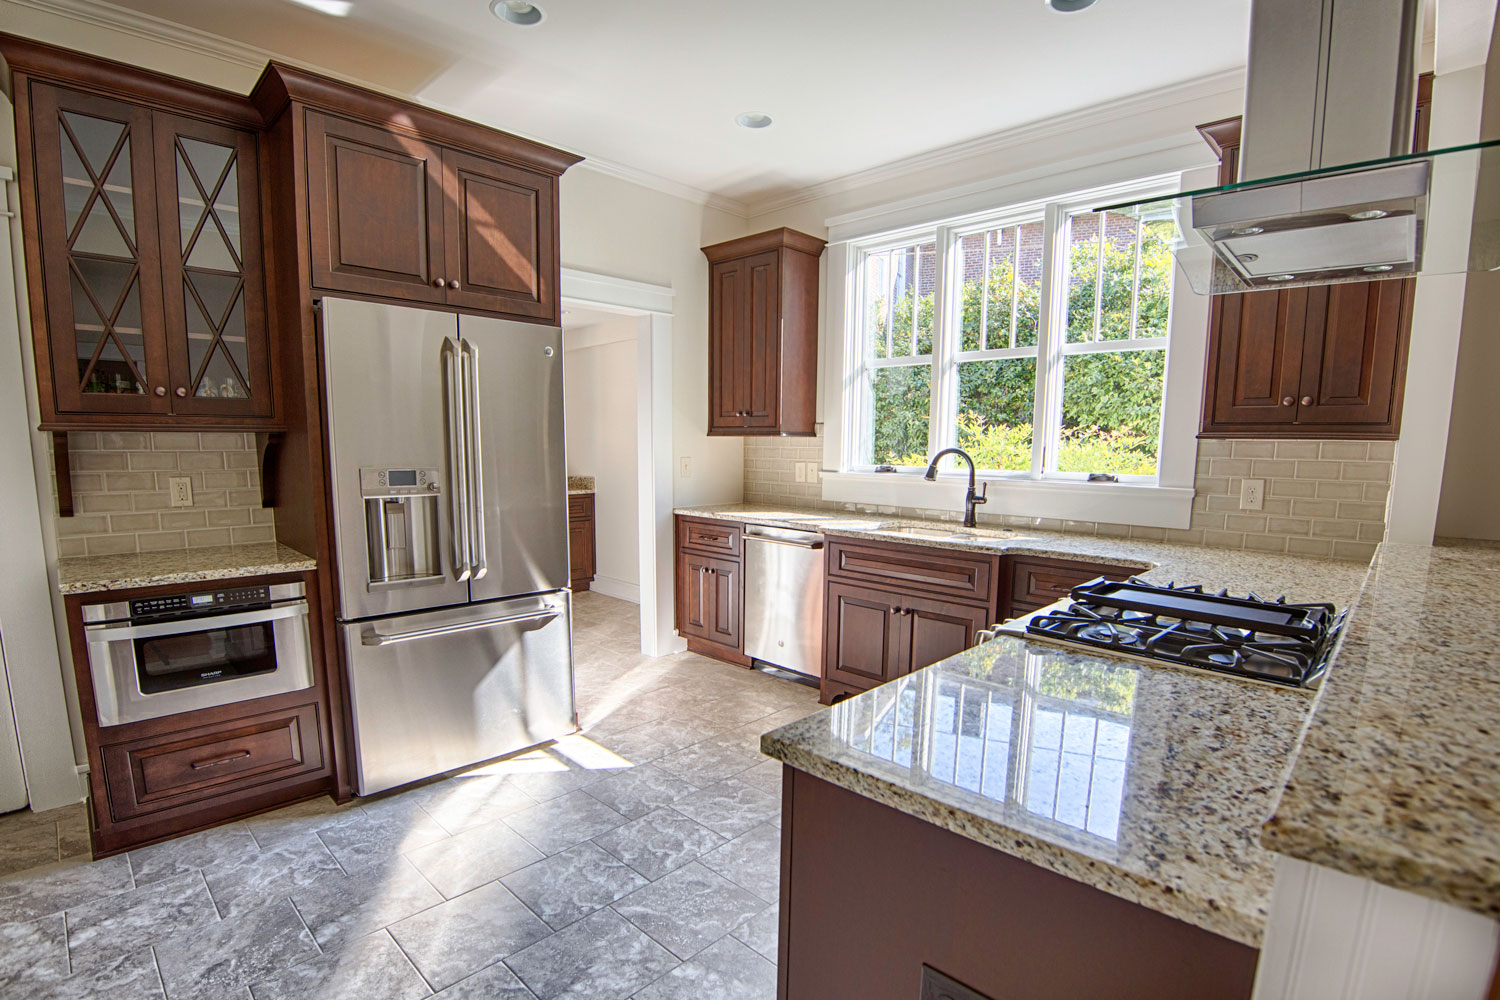 When Updating Old Kitchen Cabinets Should You Reface Or Replace Toulmin Bath